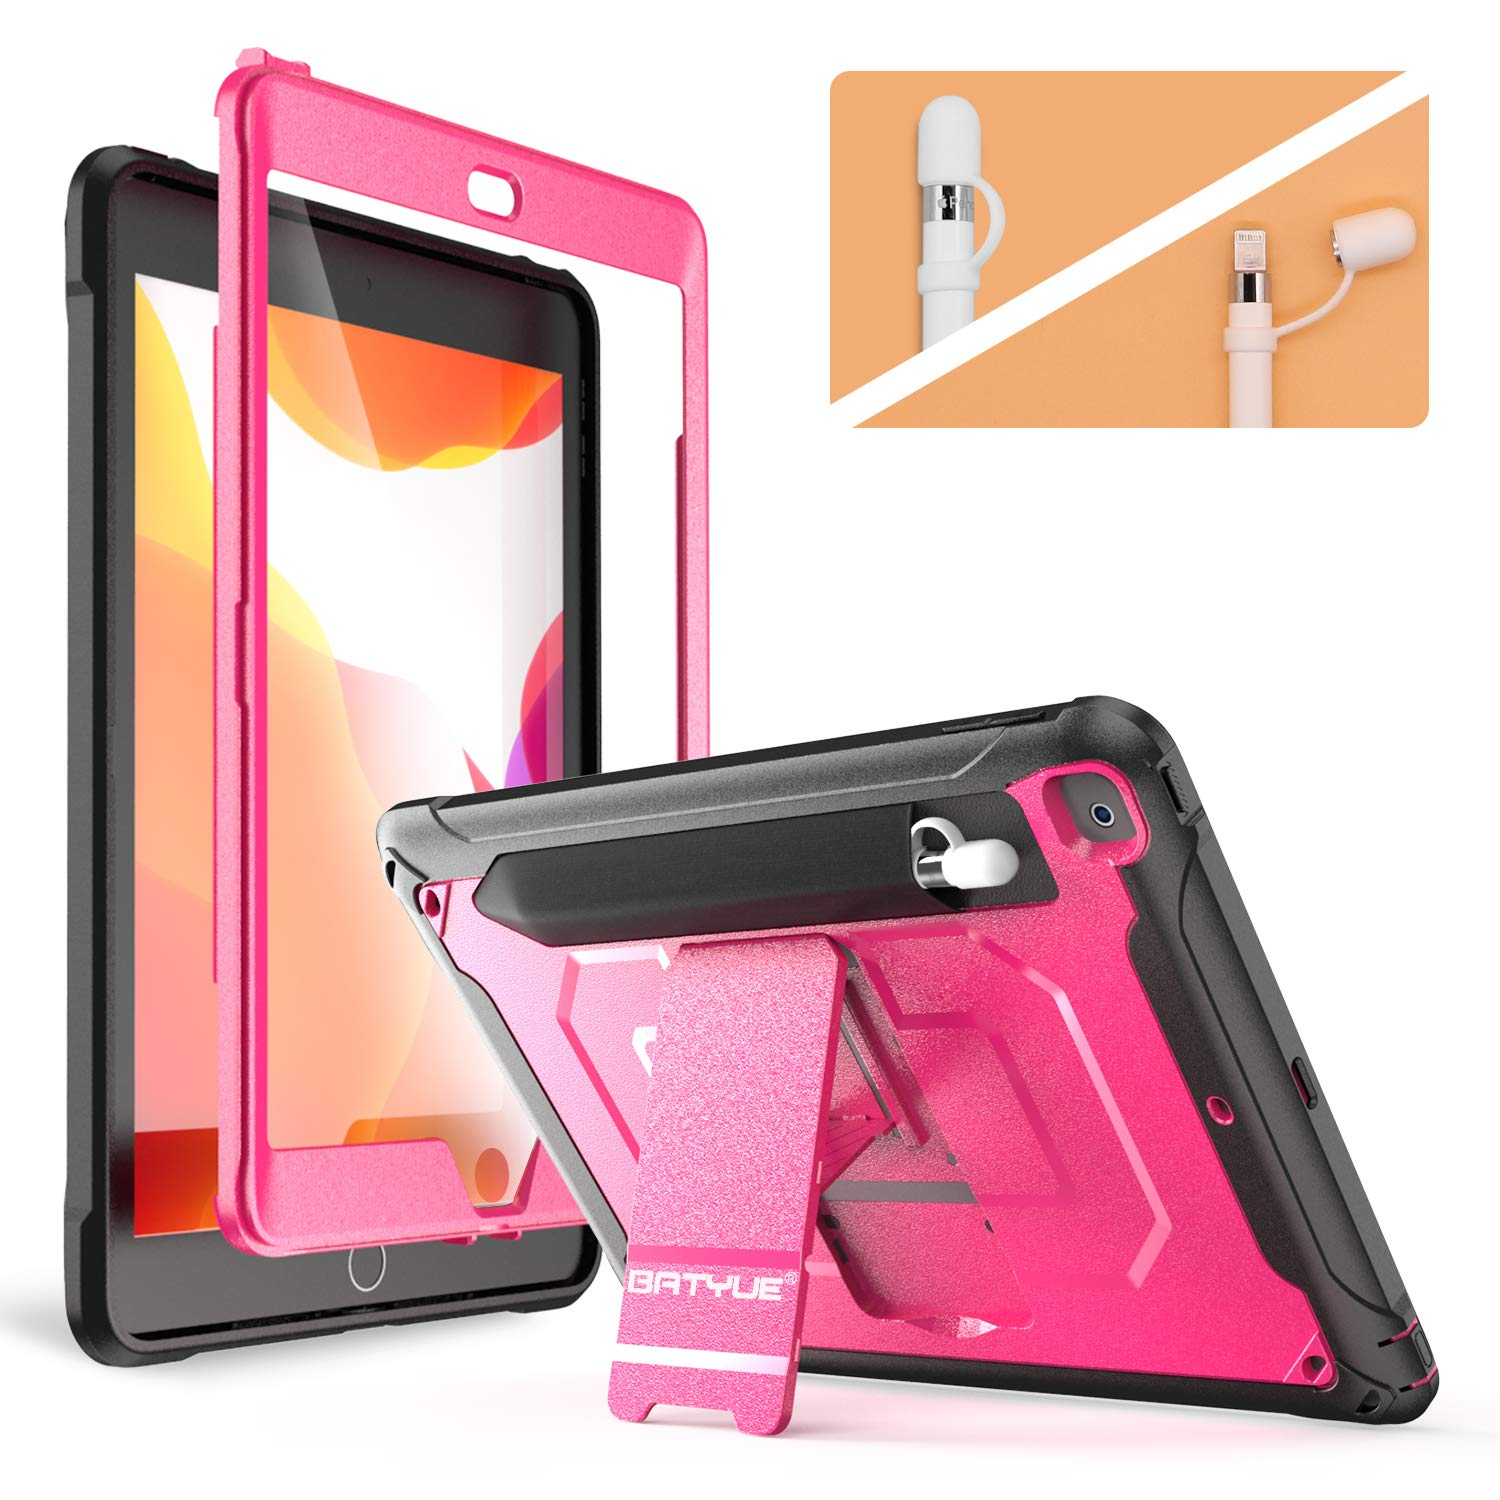 BATYUE New iPad 10.2 Case 2019, [Built-in Screen Protector] Shockproof Anti-Slip High Impact Resistant Armor Protective Case w/Stand/Pencil Holder/Pencil Cap Holder for iPad 7th Generation (Rose Red)